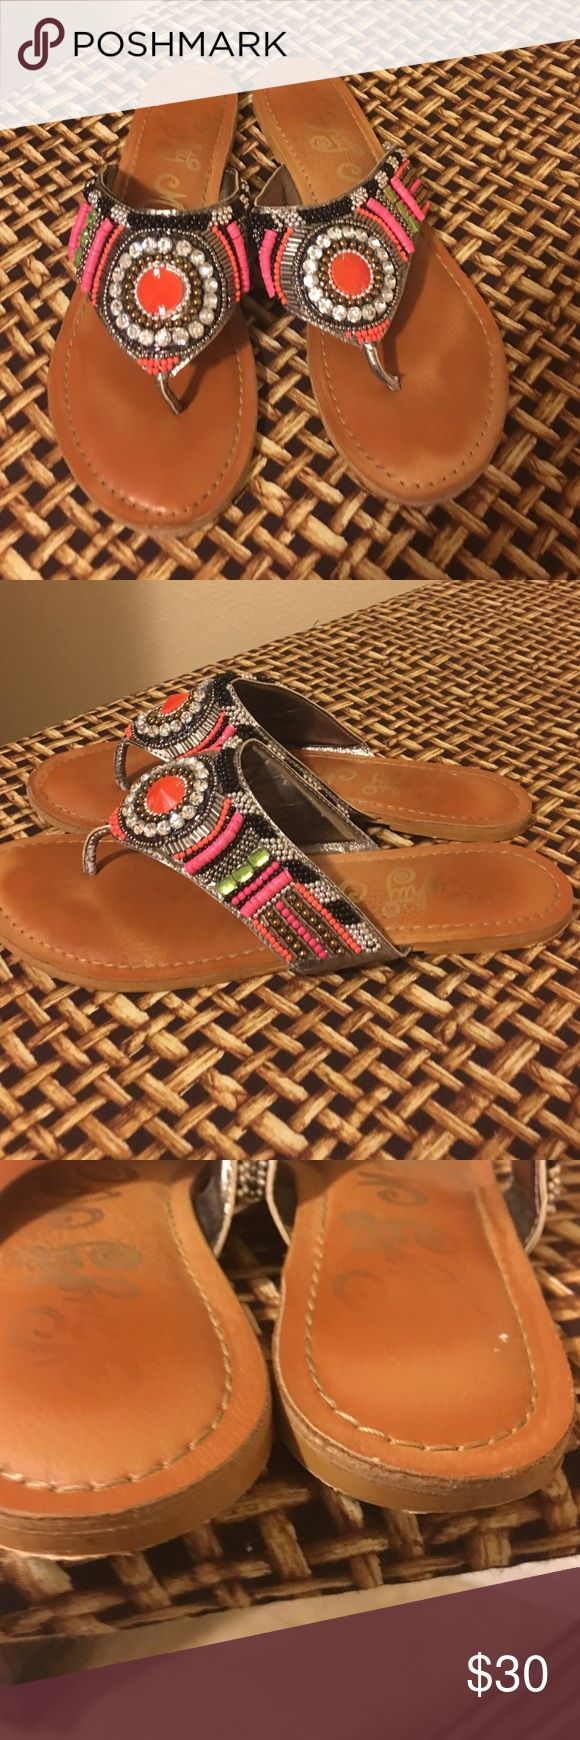 Naughty Monkey Embellished sandals Pretty colorful embellished sandals. Good condition. Not a missing bead. naughty monkey Shoes Sandals